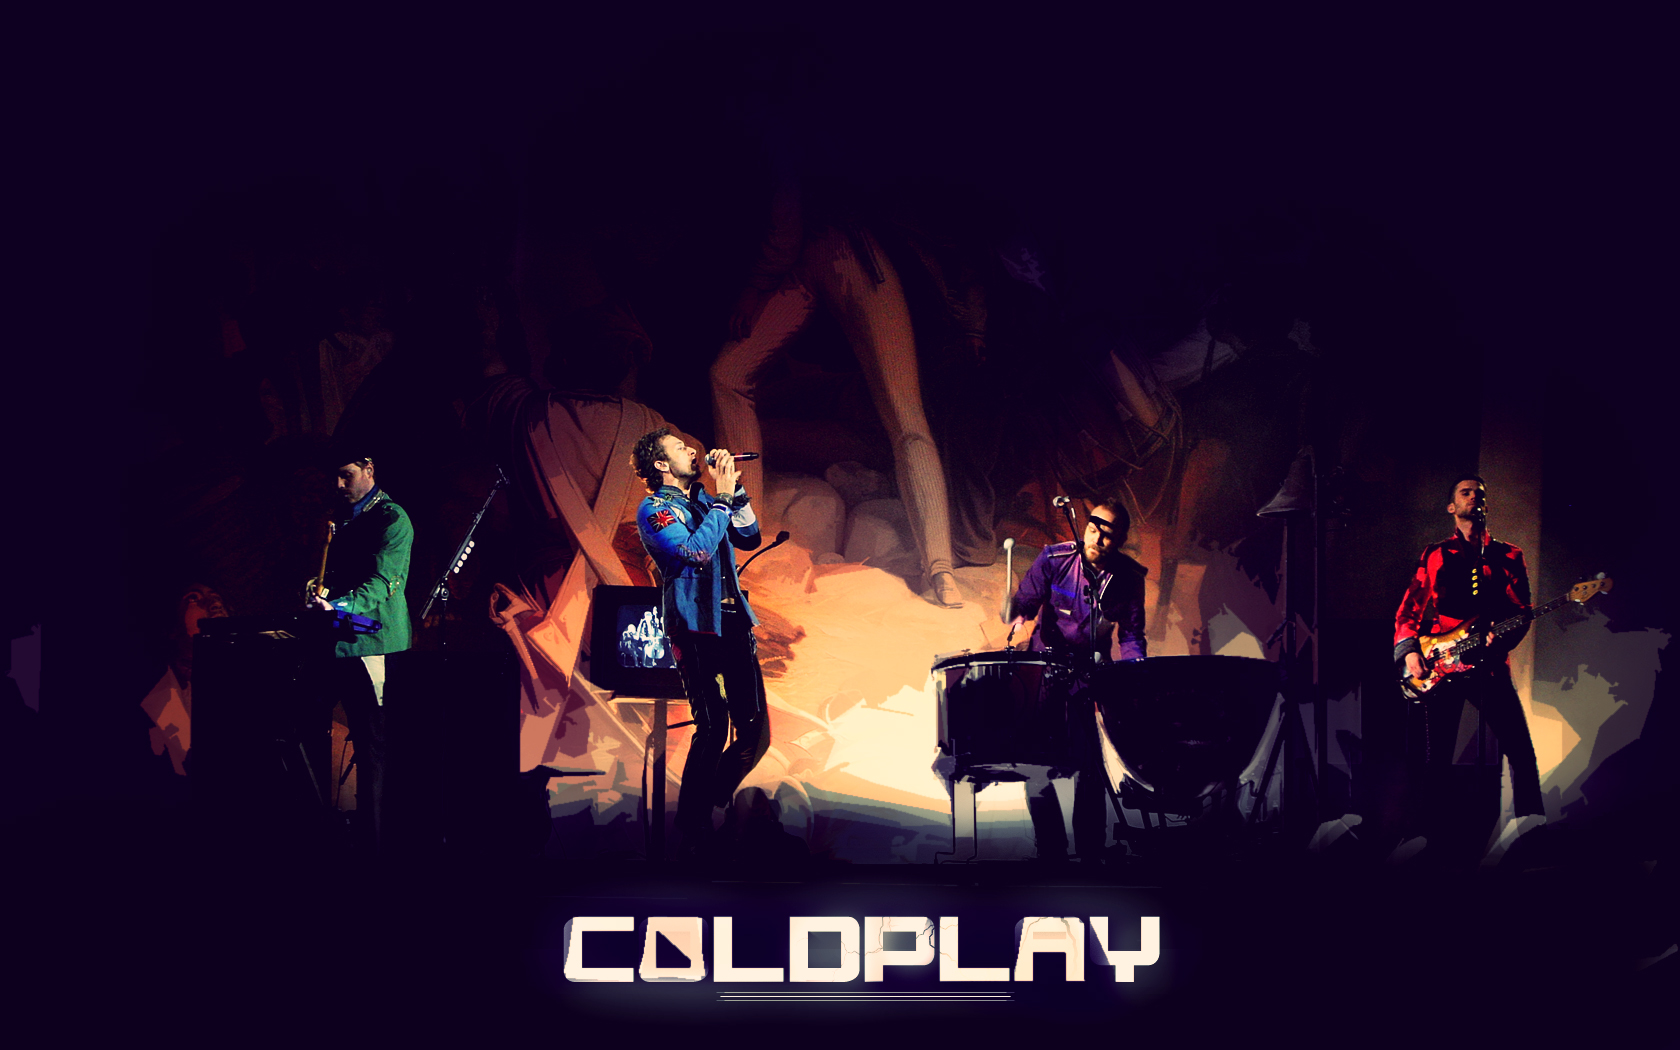 Coldplay Music Wallpaper HD